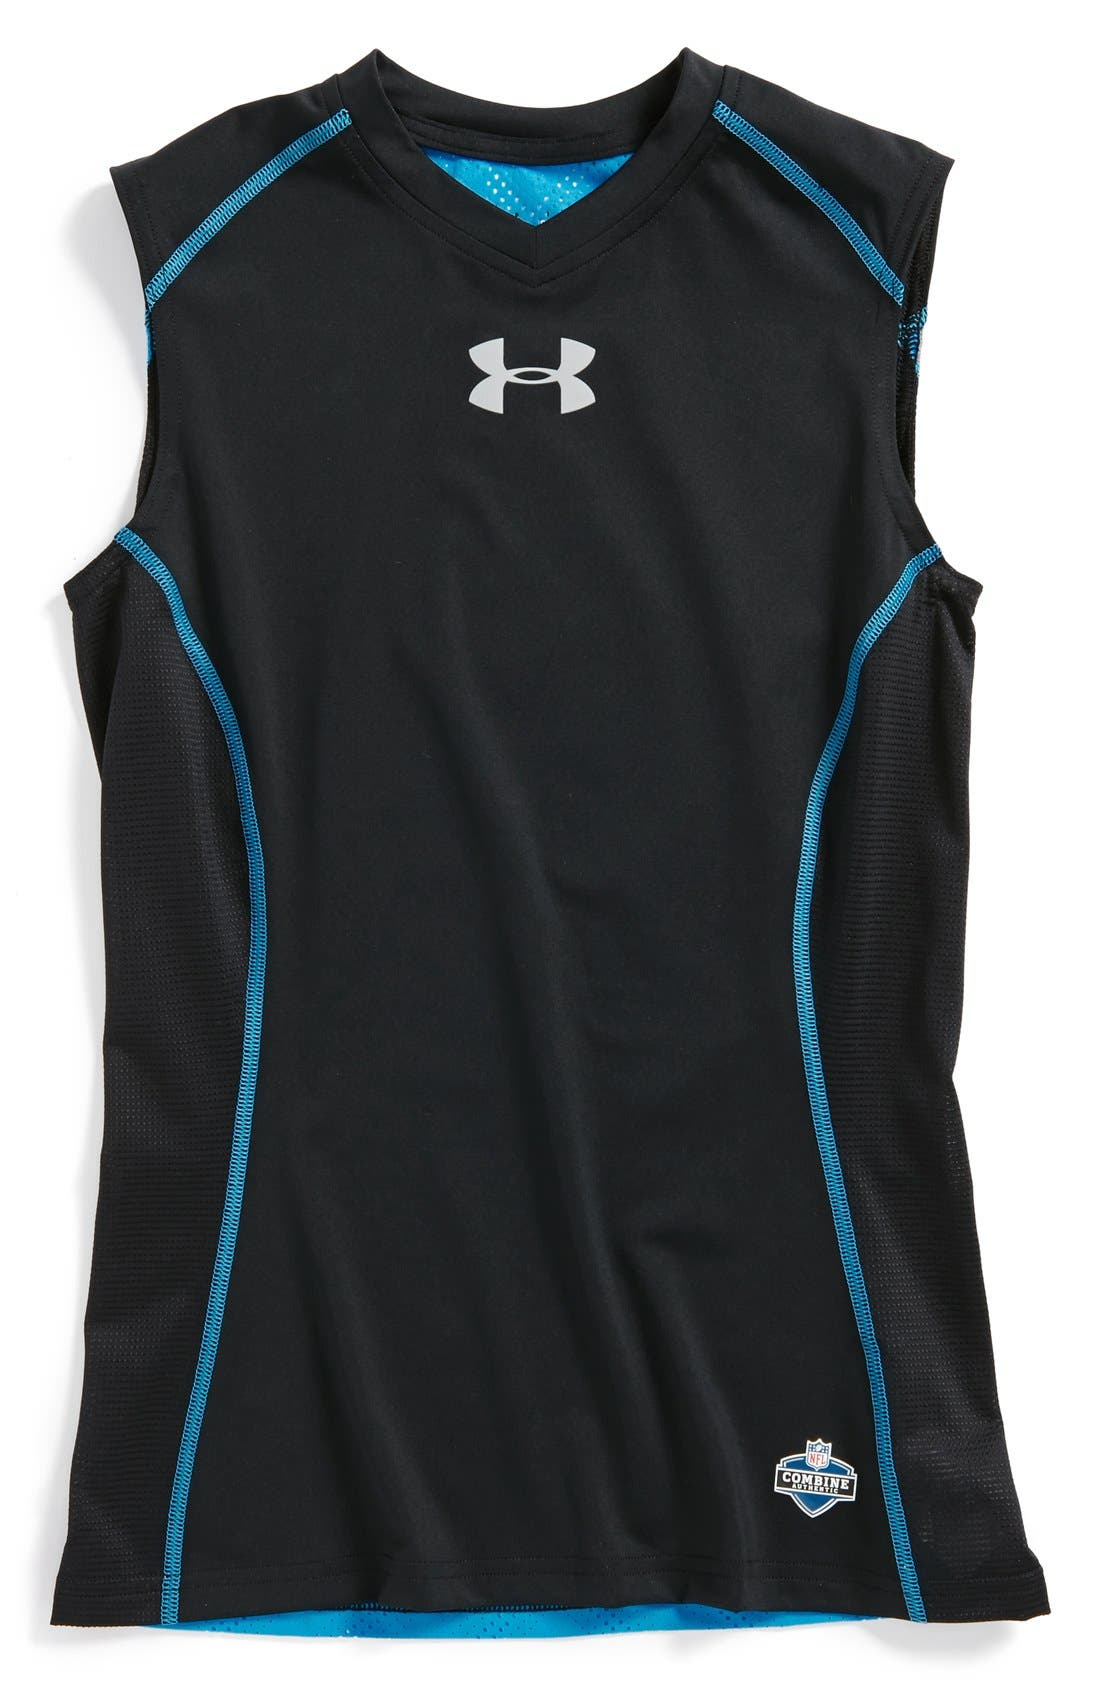 Alternate Image 1 Selected - Under Armour 'NFL Combine Authentic' Sleeveless T-Shirt (Big Boys)